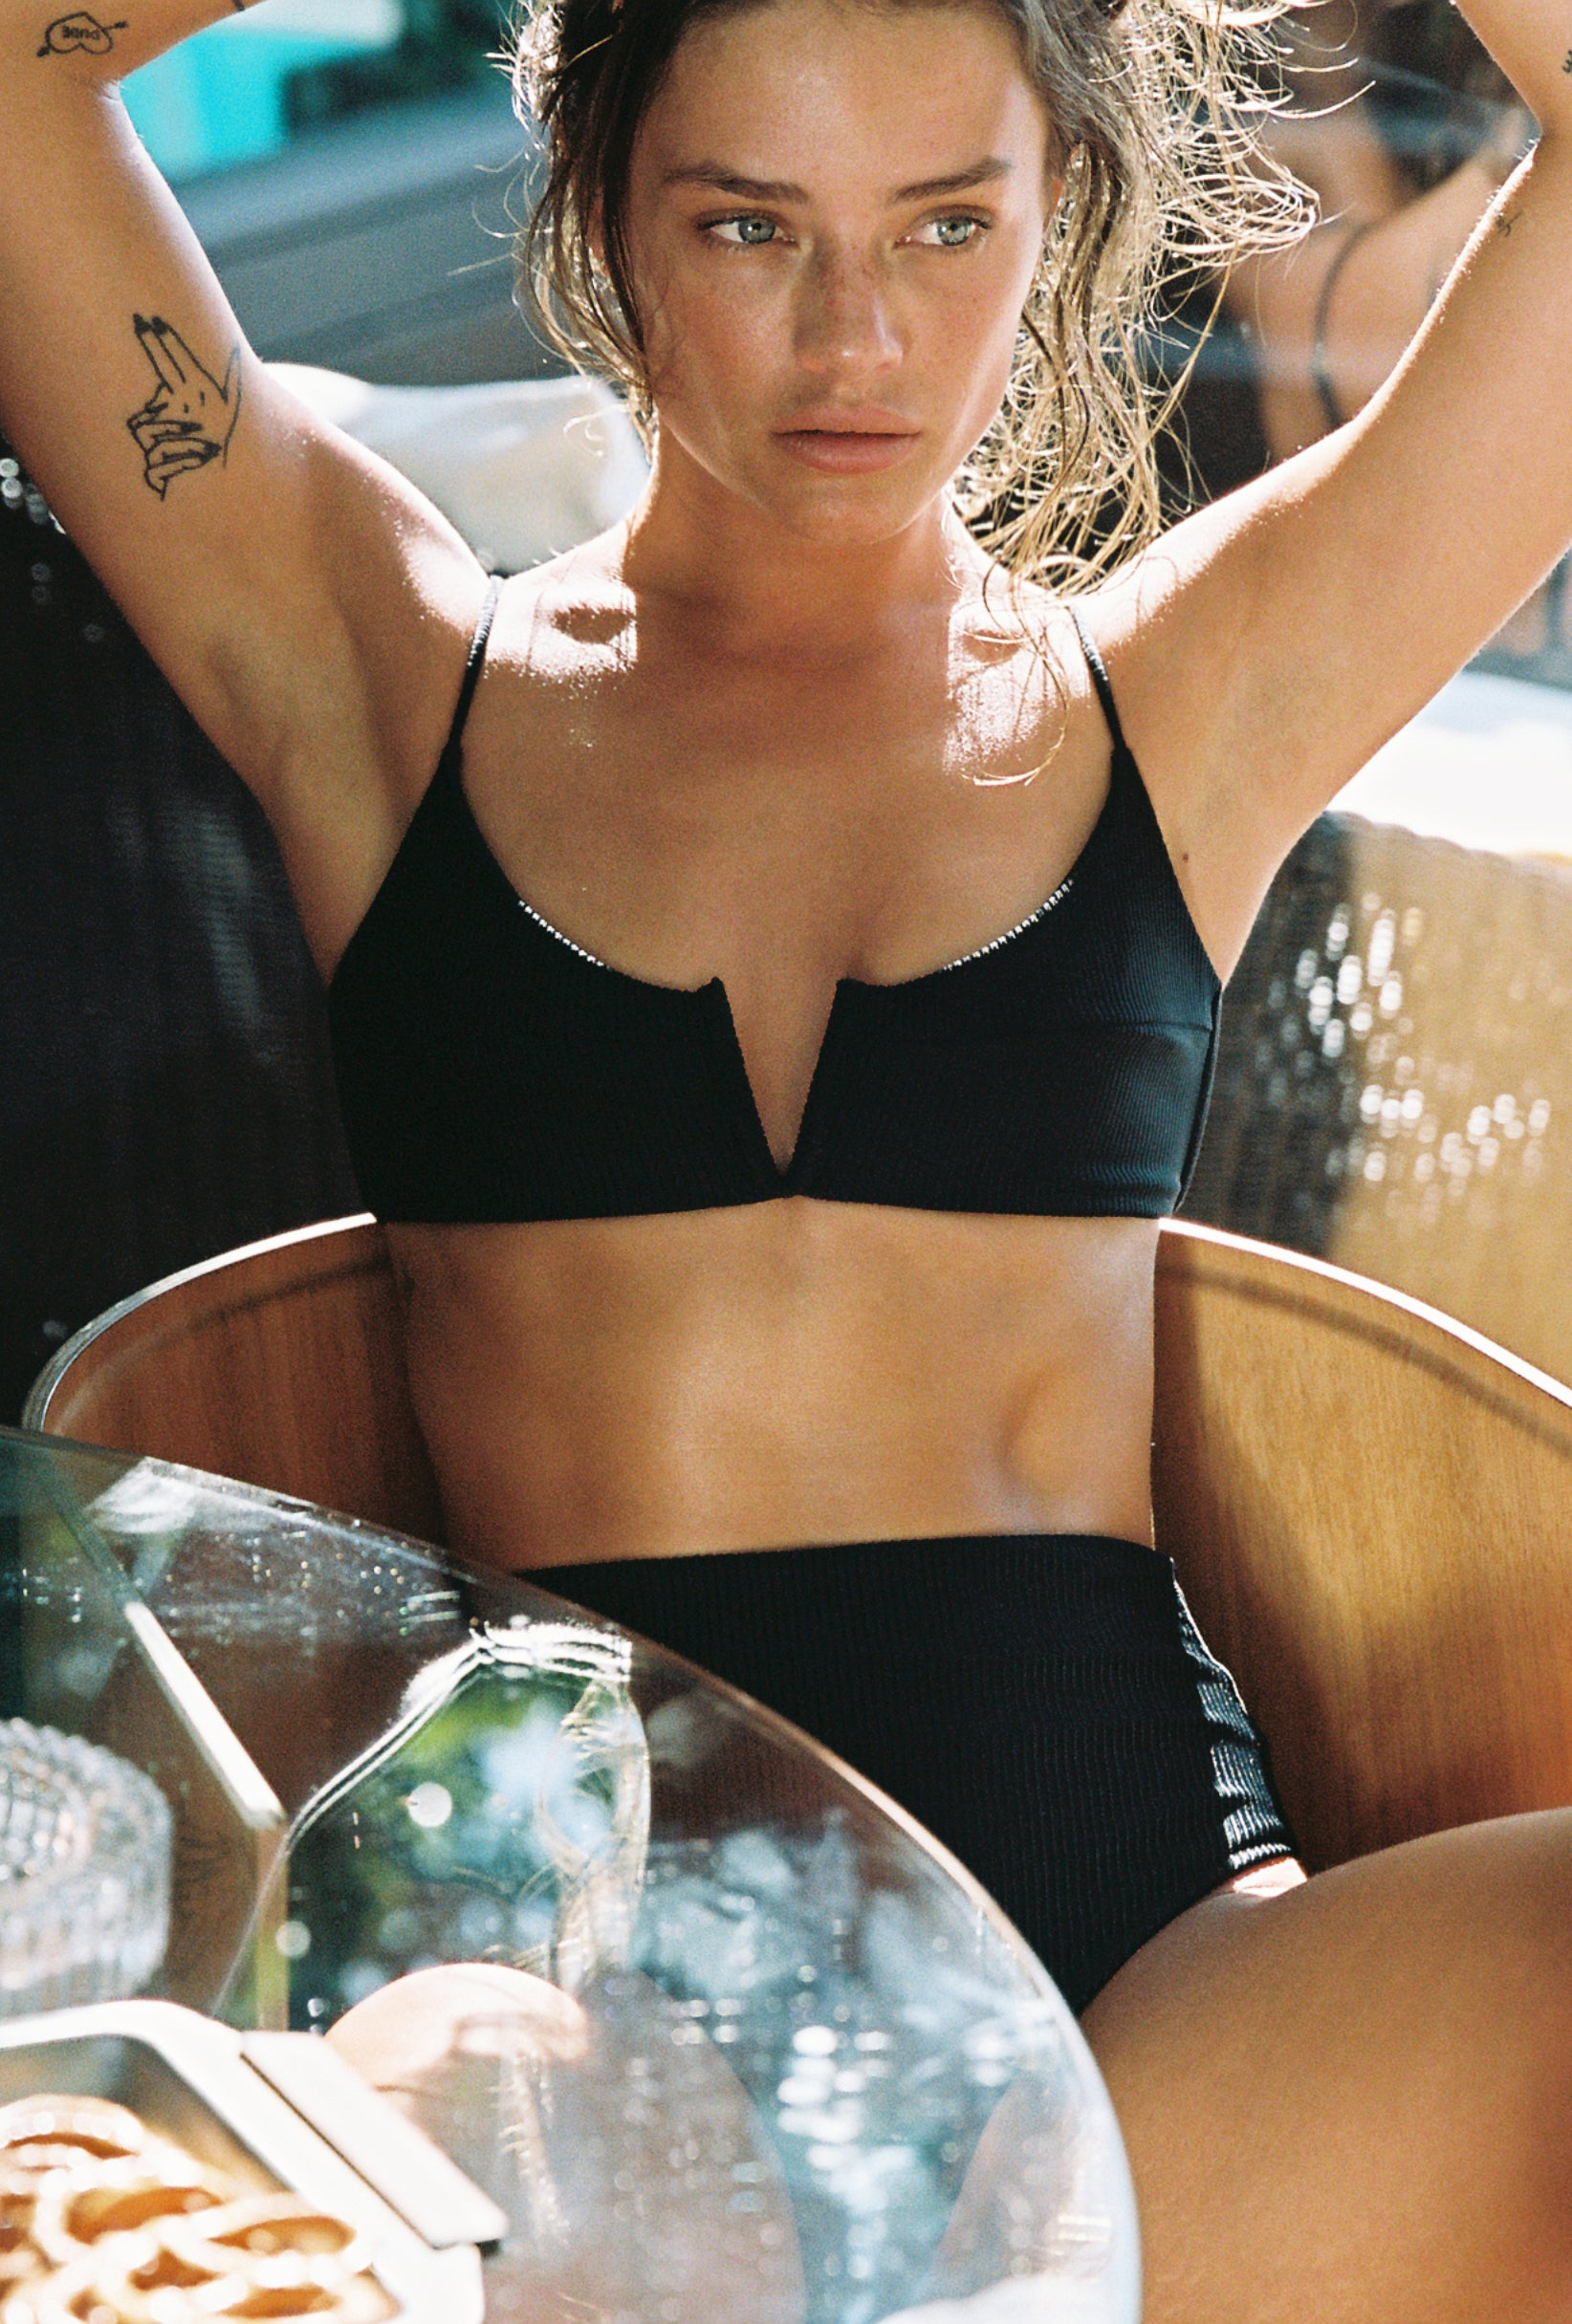 Vintage black ribbed bra style bikini top. Ethical and sustainable swimwear.